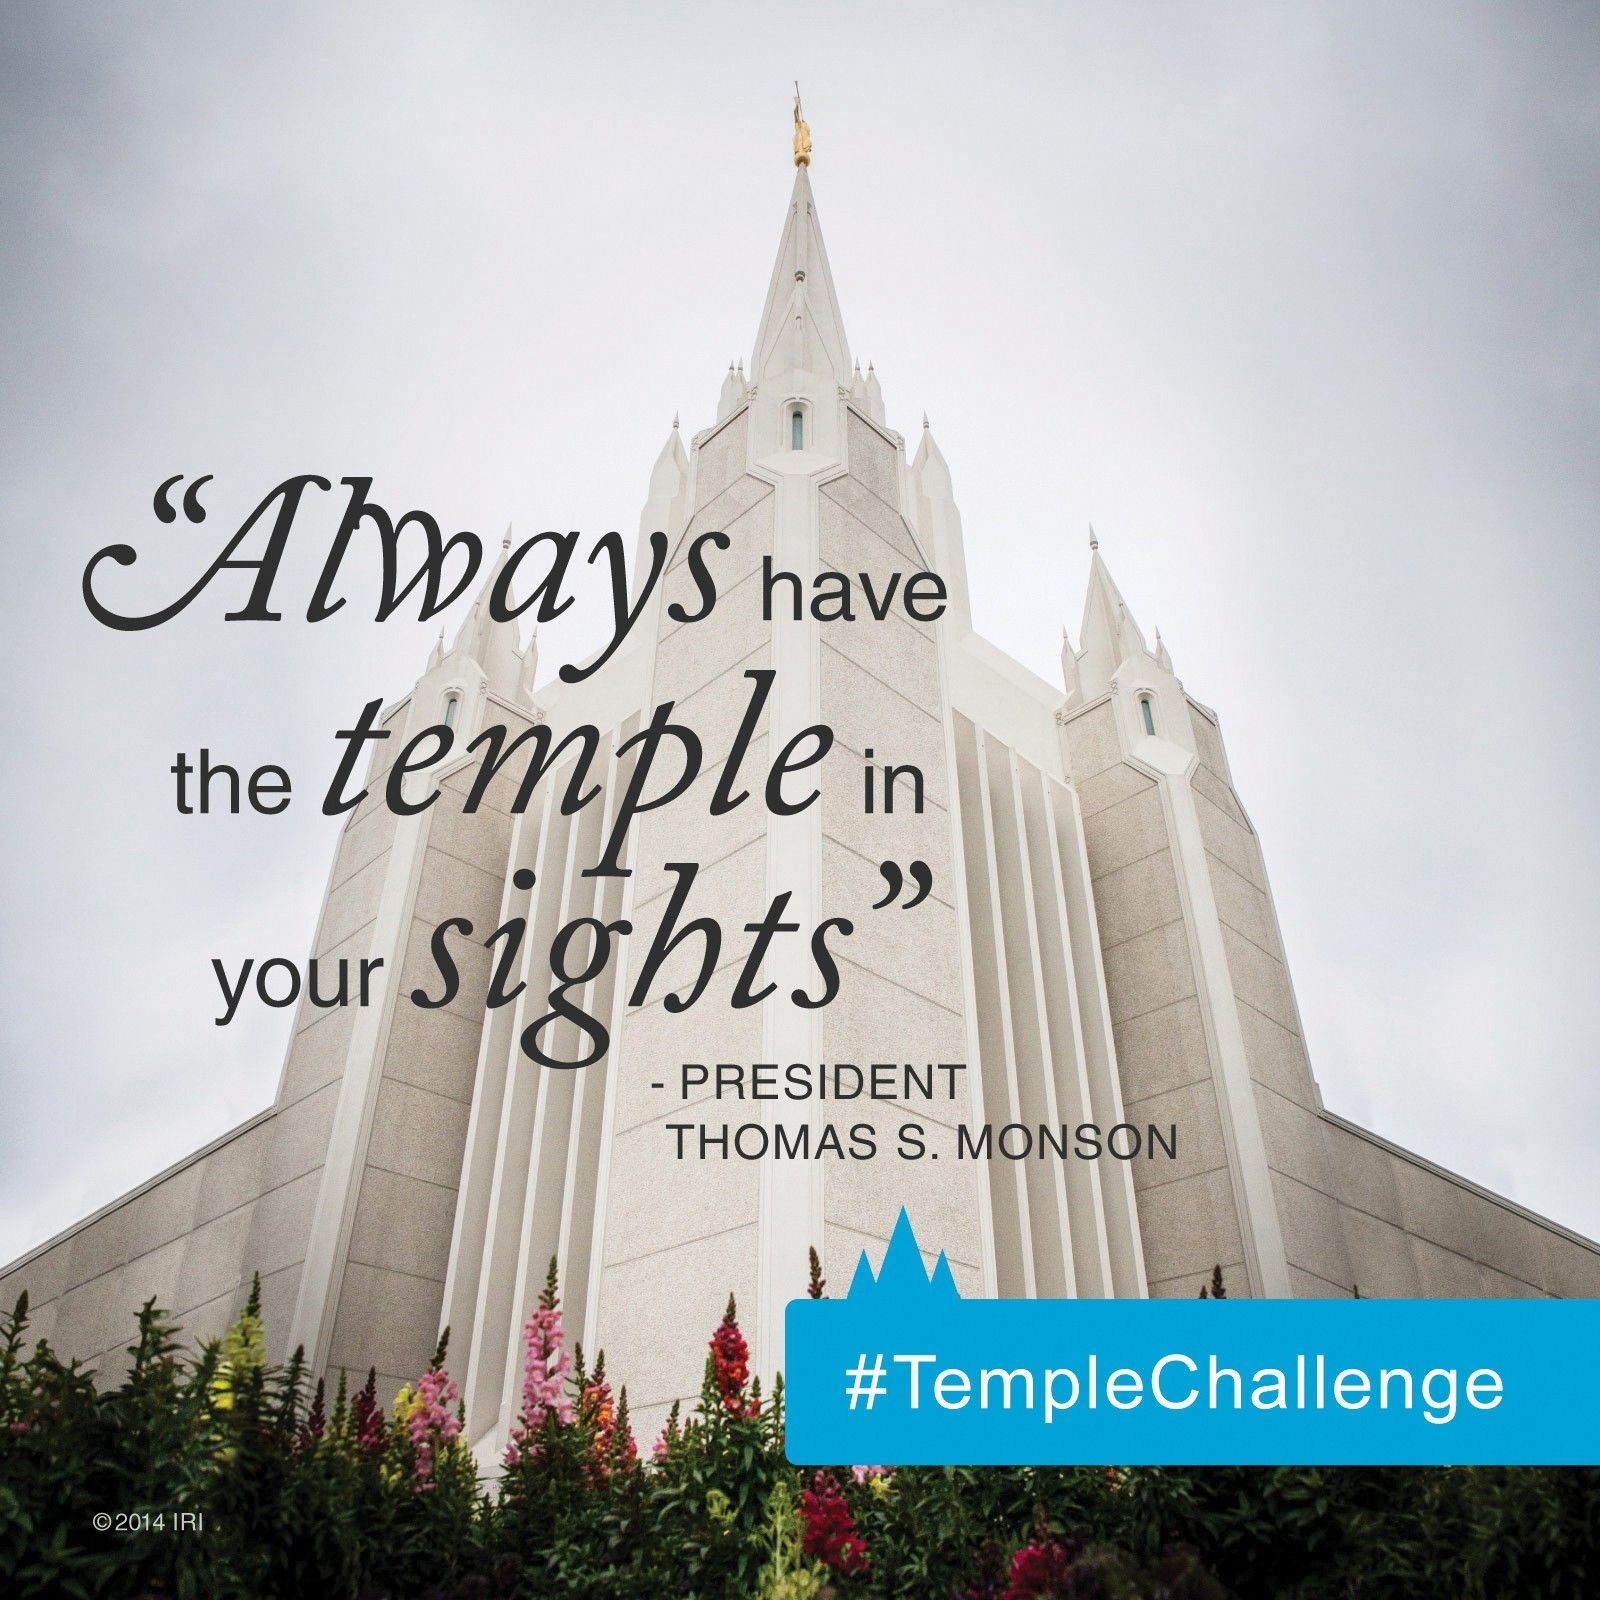 """""""Now, my young friends who are in your teenage years, always have the temple in your sights. Do nothing which will keep you from entering its doors and partaking of the sacred and eternal blessings there.""""—President Thomas S. Monson, """"The Holy Temple—a Beacon to the World"""" Learn more about keeping your sights on the temple by accepting the Youth Temple Challenge."""